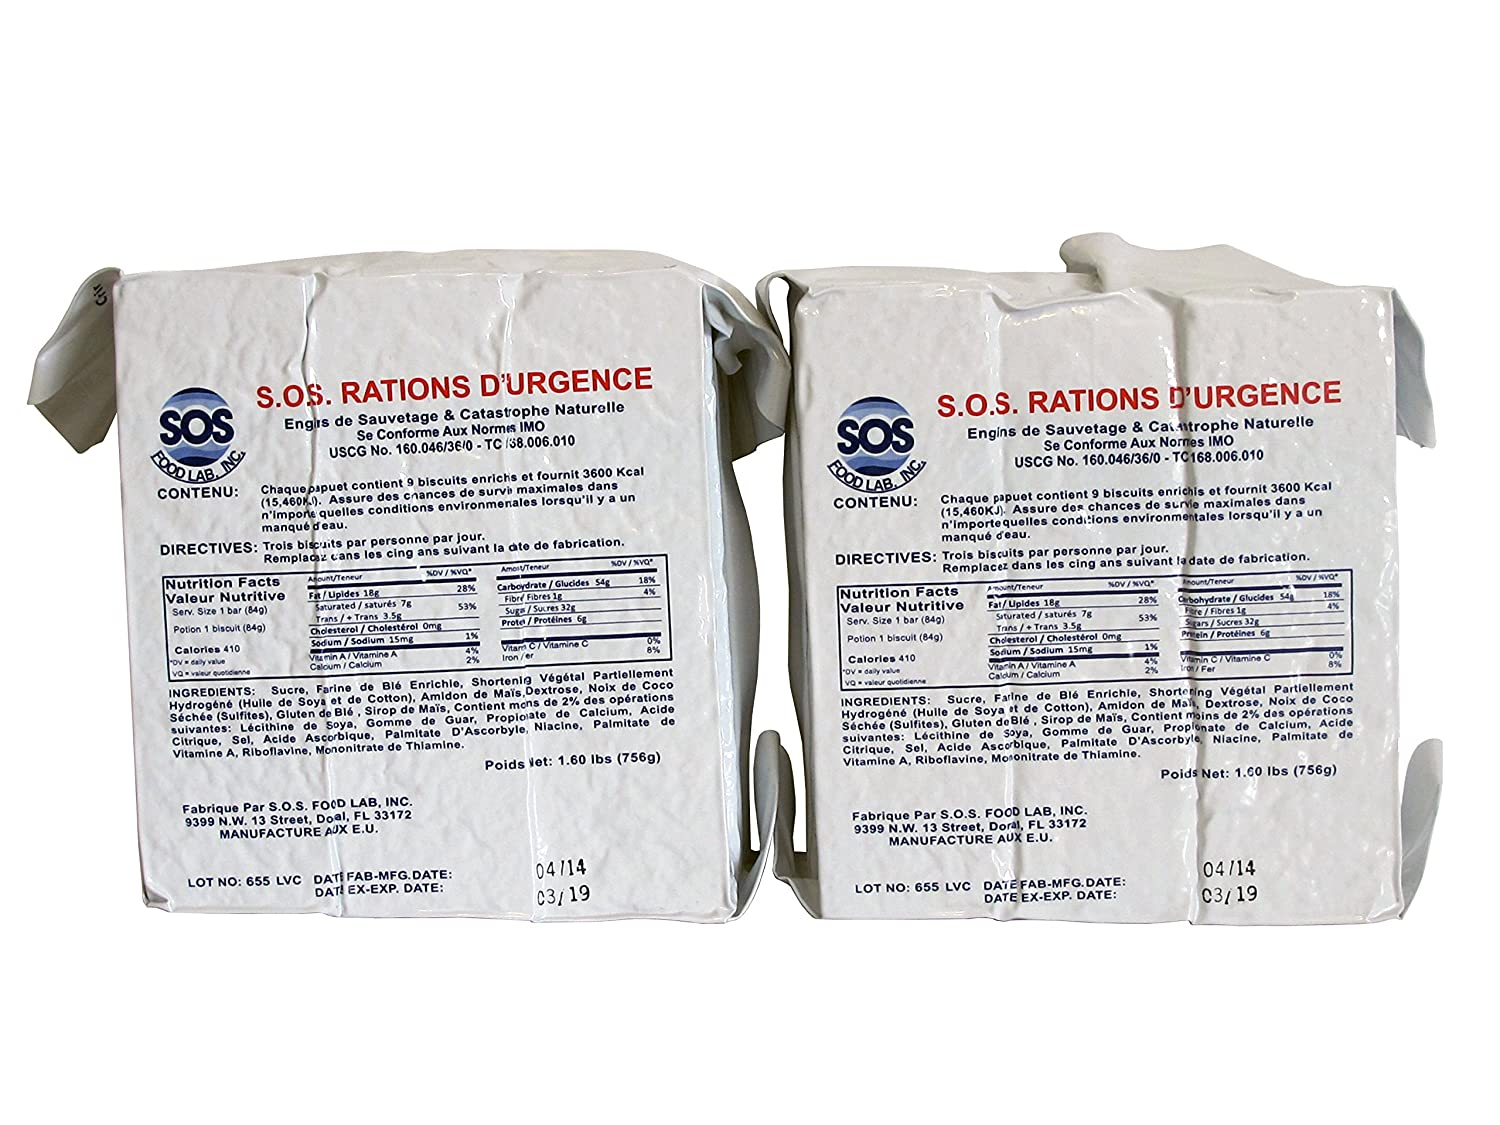 S.O.S. Rations Emergency 3600 Calorie Food Bar - 3 Day / 72 Hour Package with 5 Year Shelf Life 2 pack 1.6 lbs SOS Food Labs Inc.